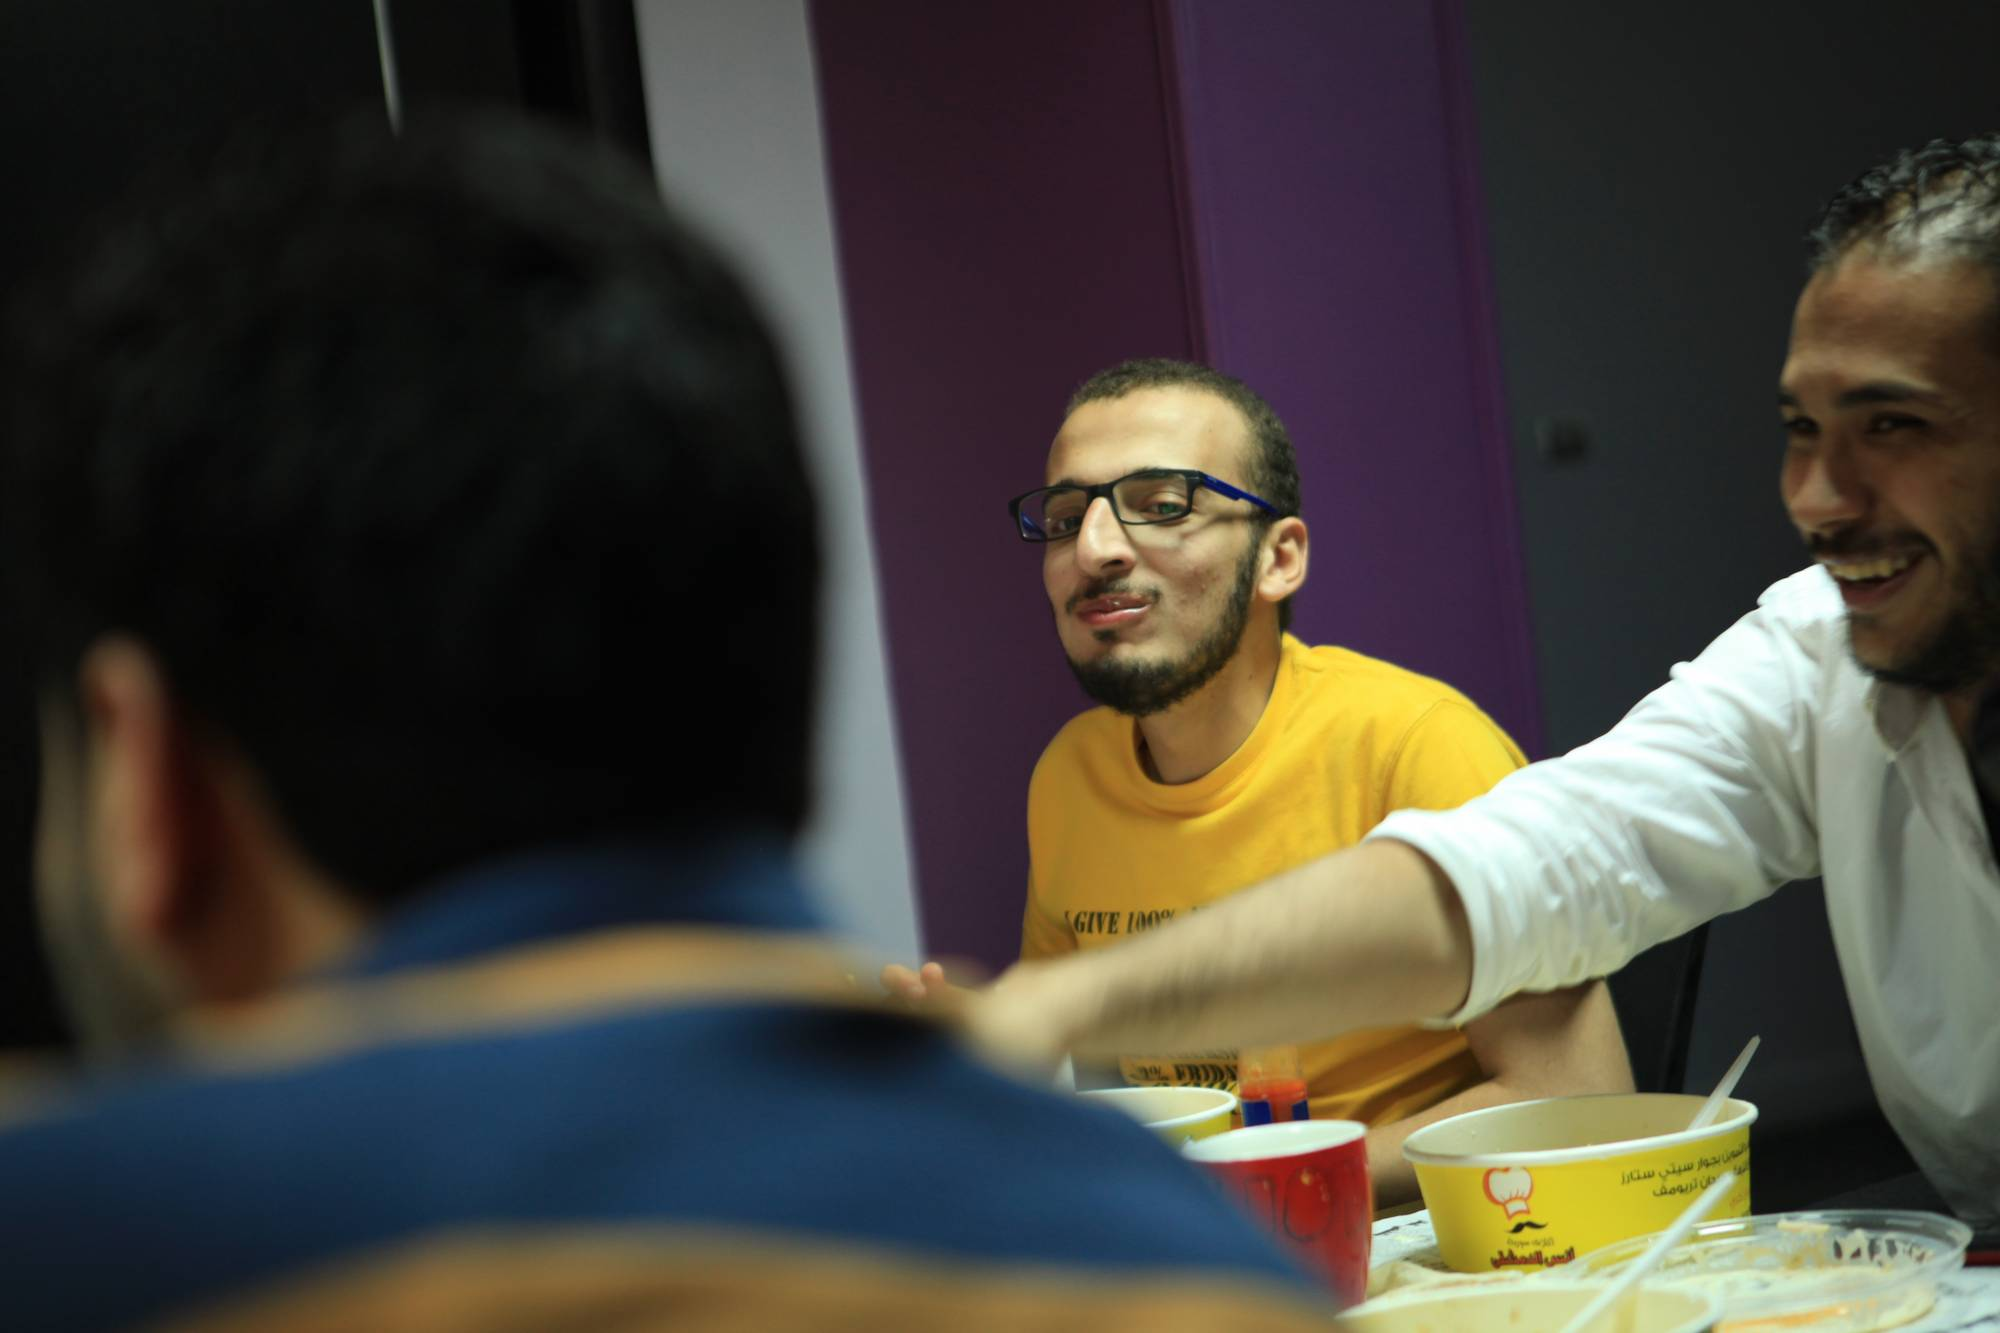 Shehab Gomaa While eating too much